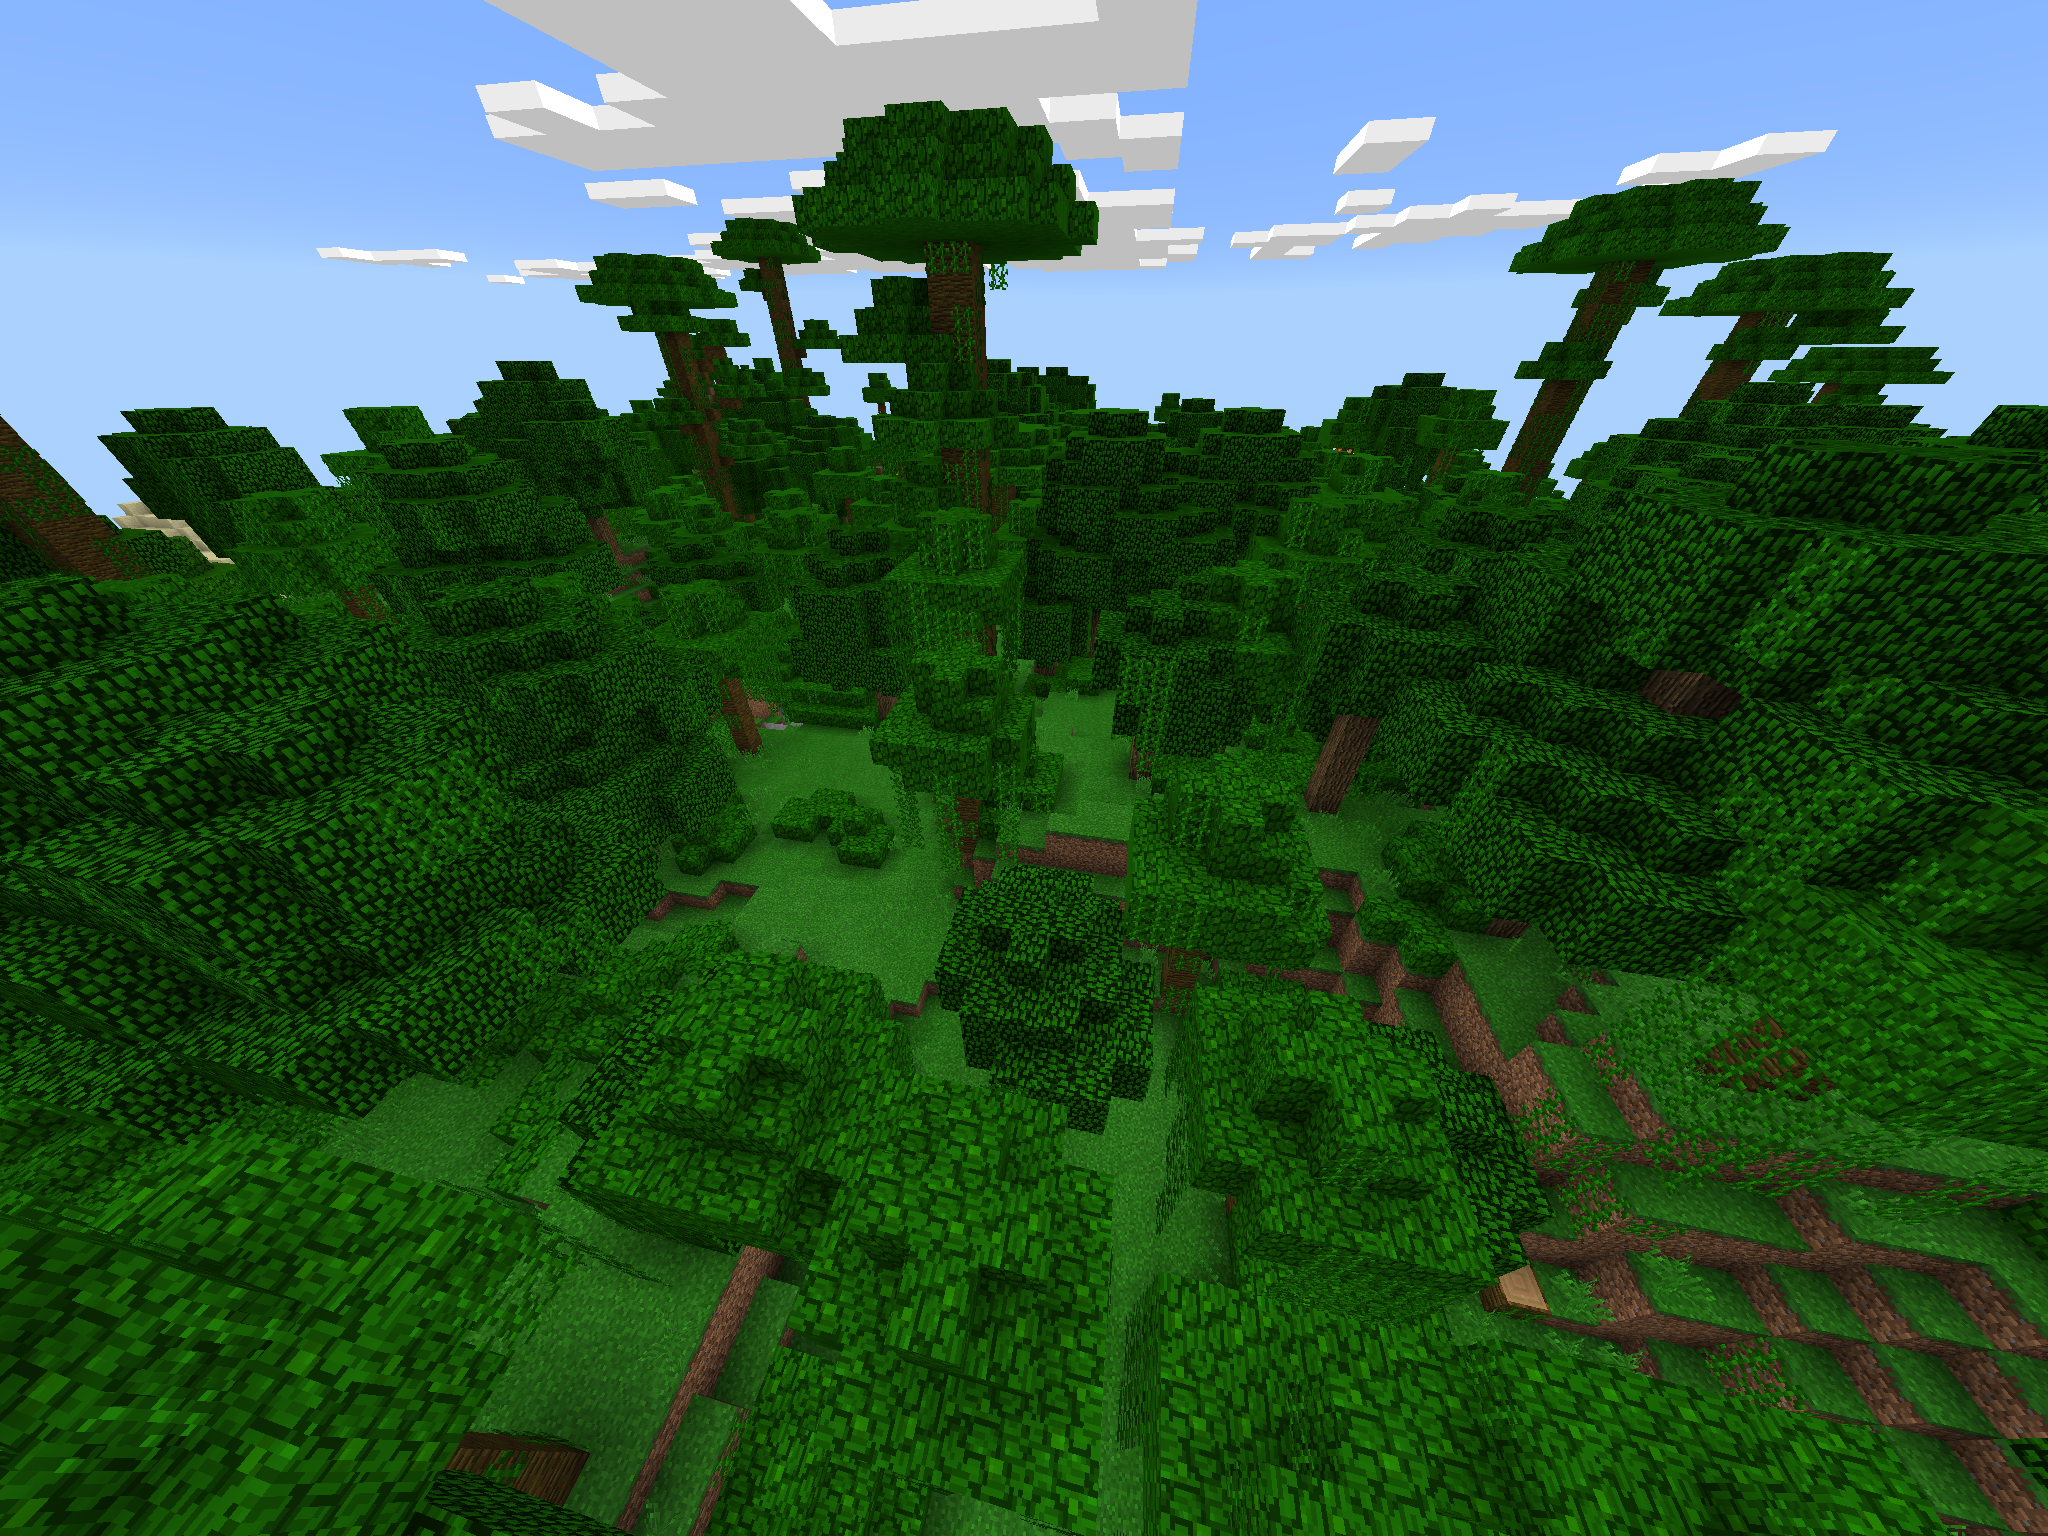 Jungle and Villages [Diamond] - MCPE 1.0 - Epic Minecraft PE Seeds